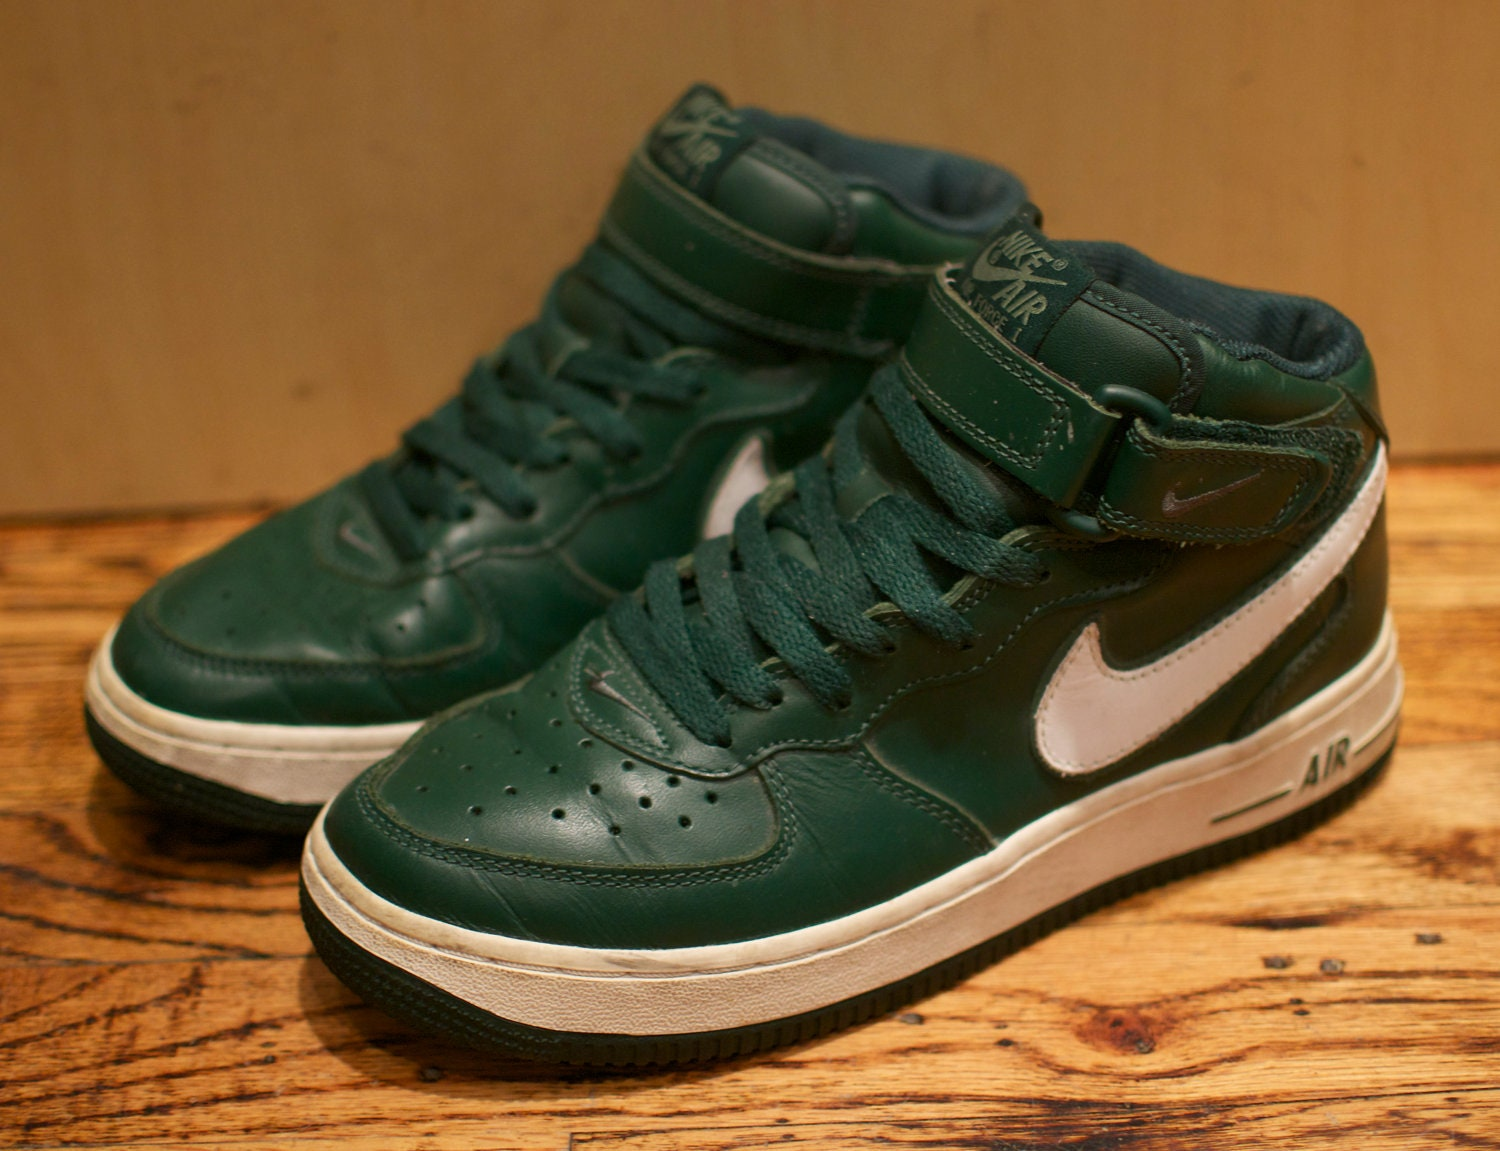 army green high top air force ones